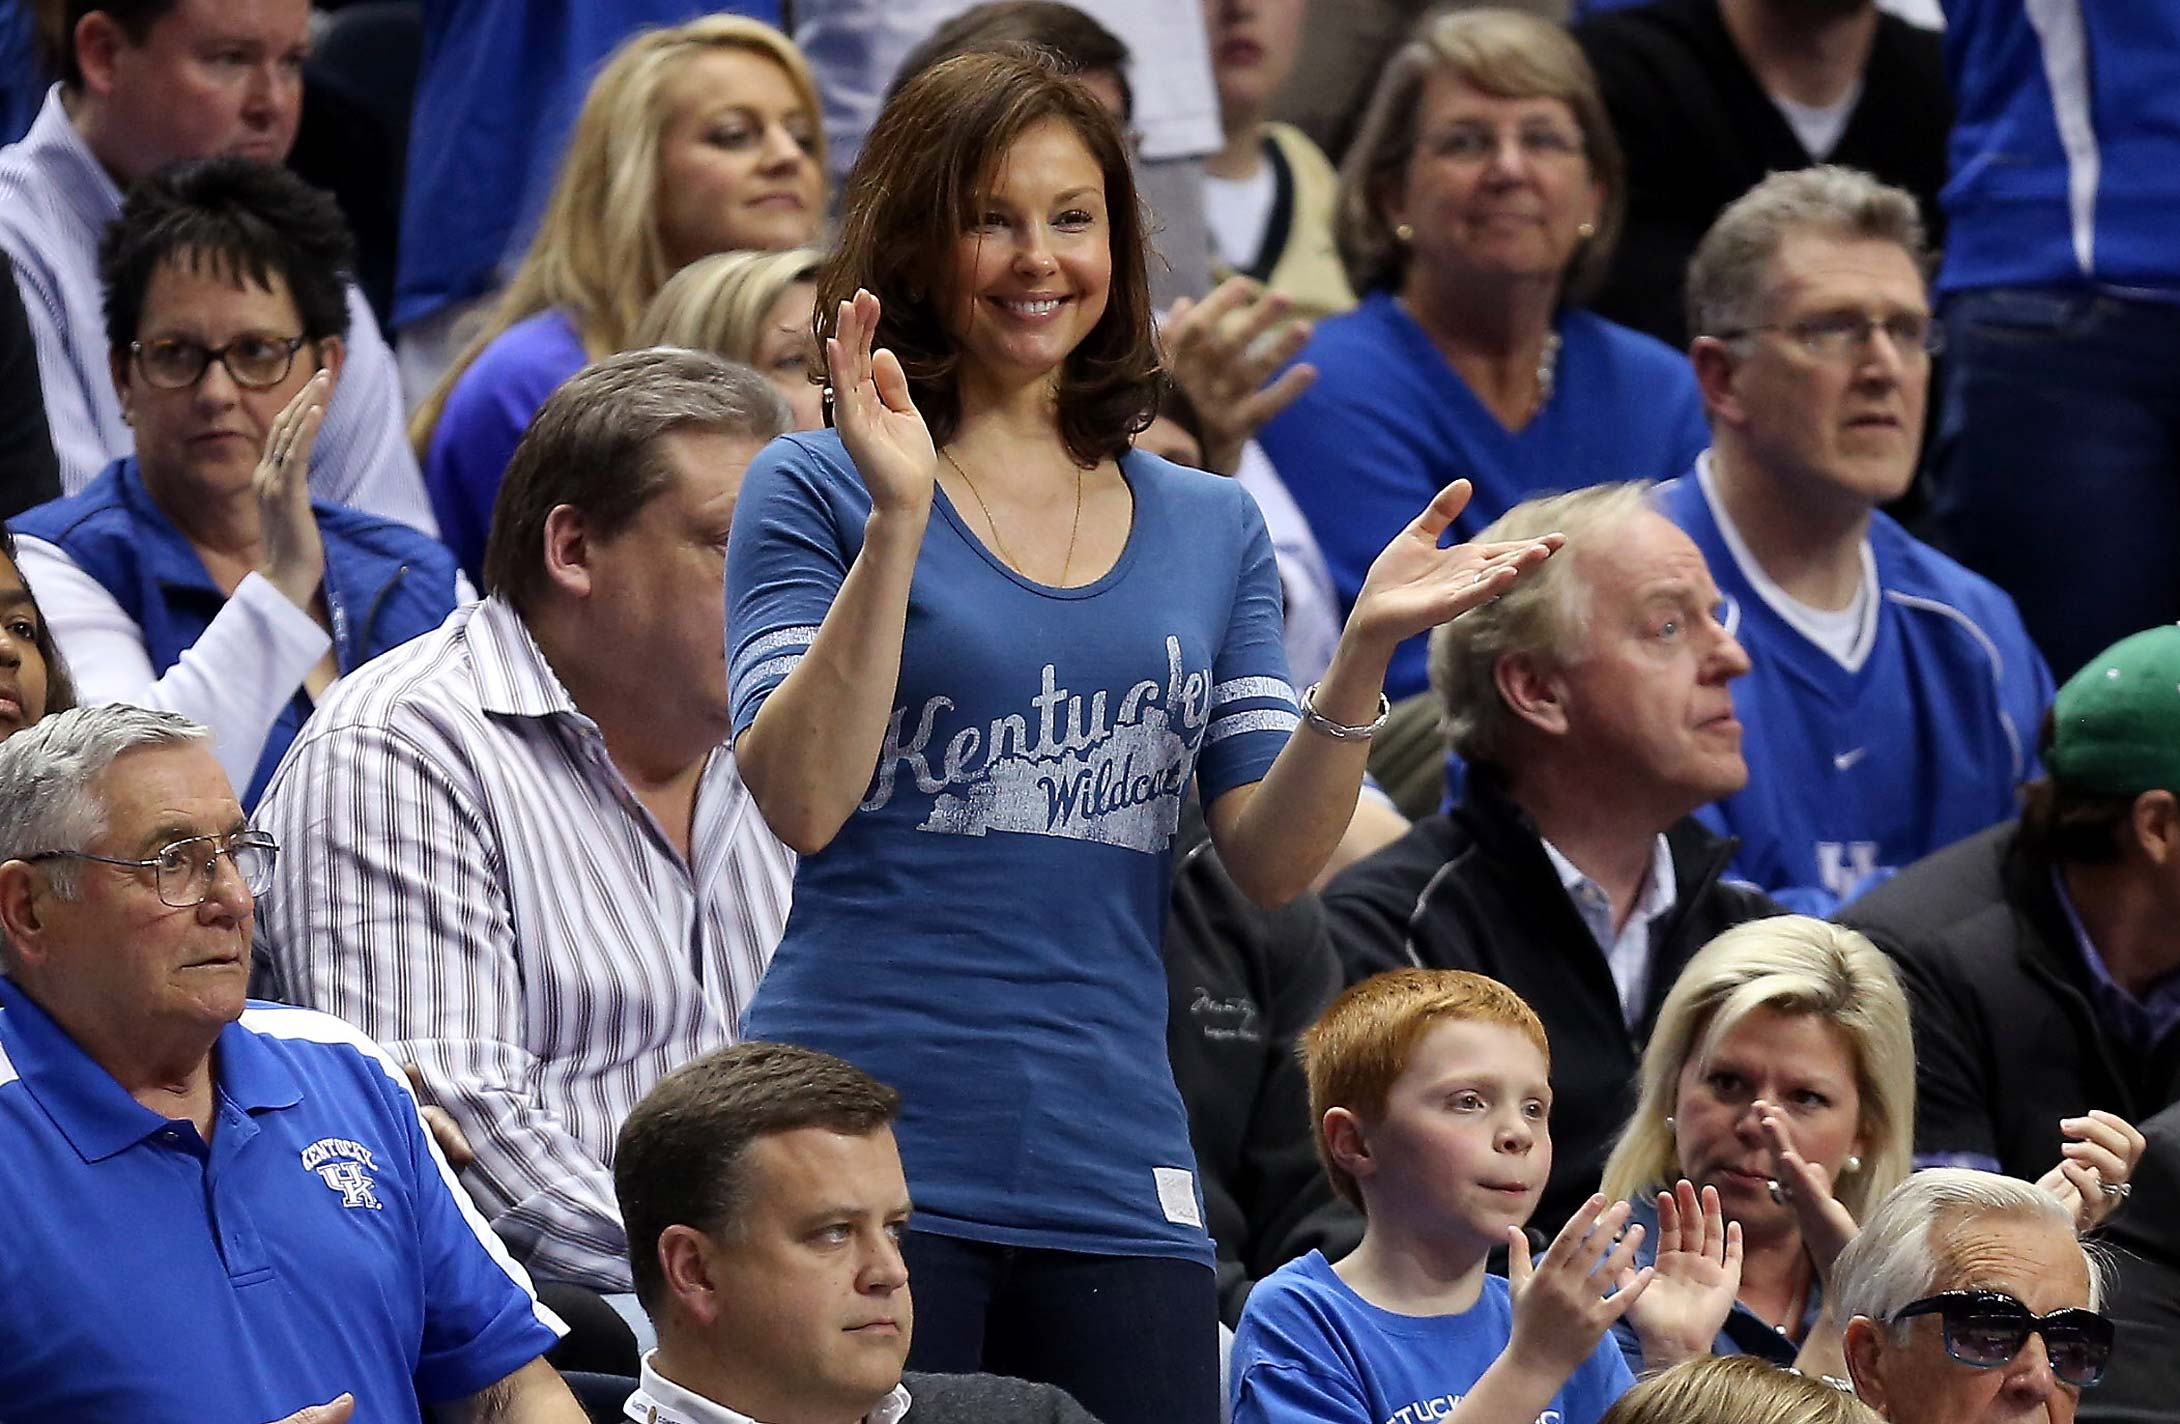 Ashley Judd during the quarterfinals of the 2013 SEC tournament in Nashville.